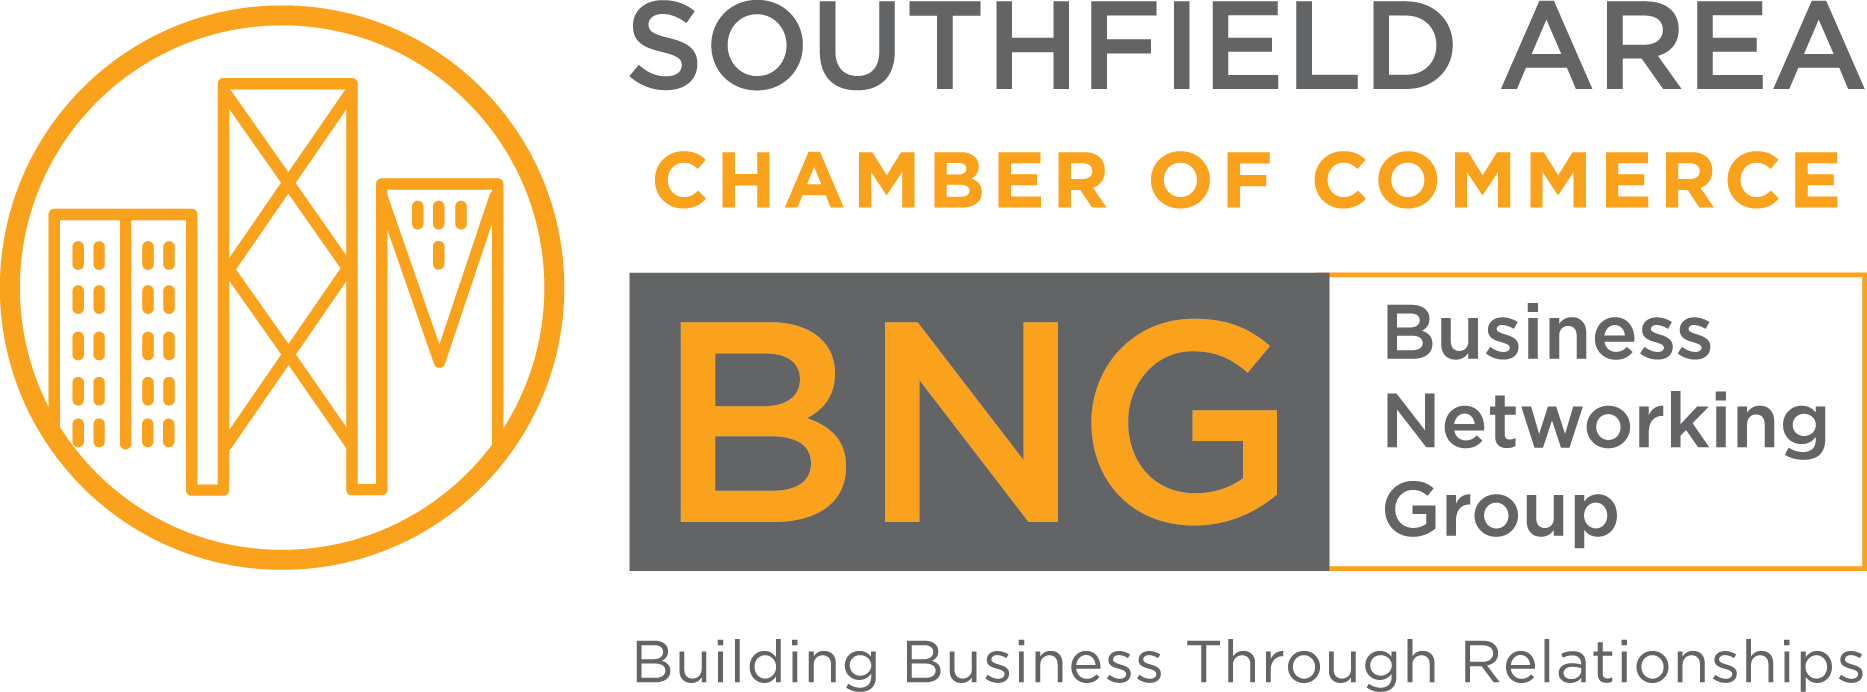 Southfield Area Chamber of Commerce